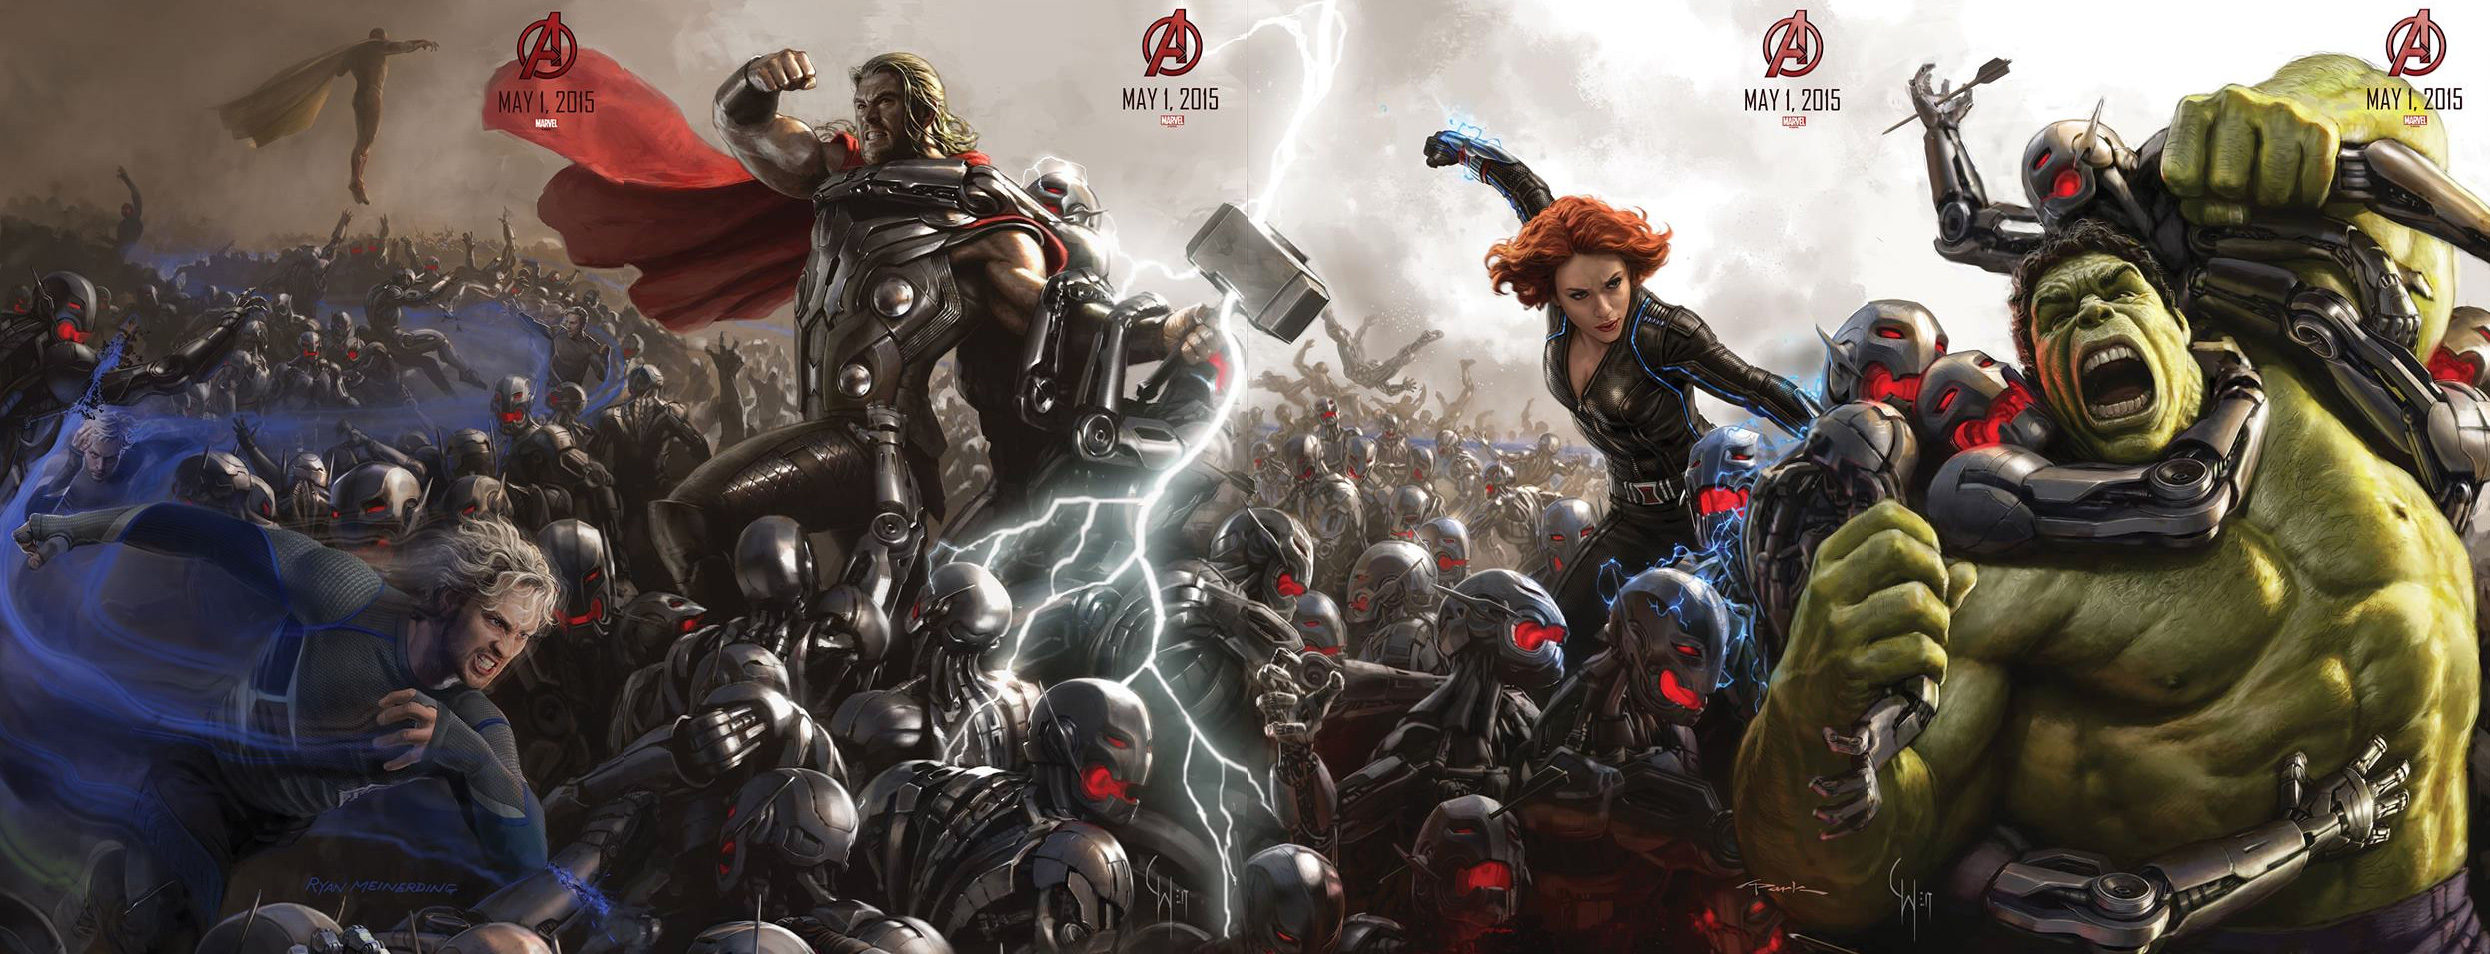 http://www.thehdroom.com/wp-content/uploads/2014/07/avengers-age-of-ultron-comic-con-poster-complete-1.jpg